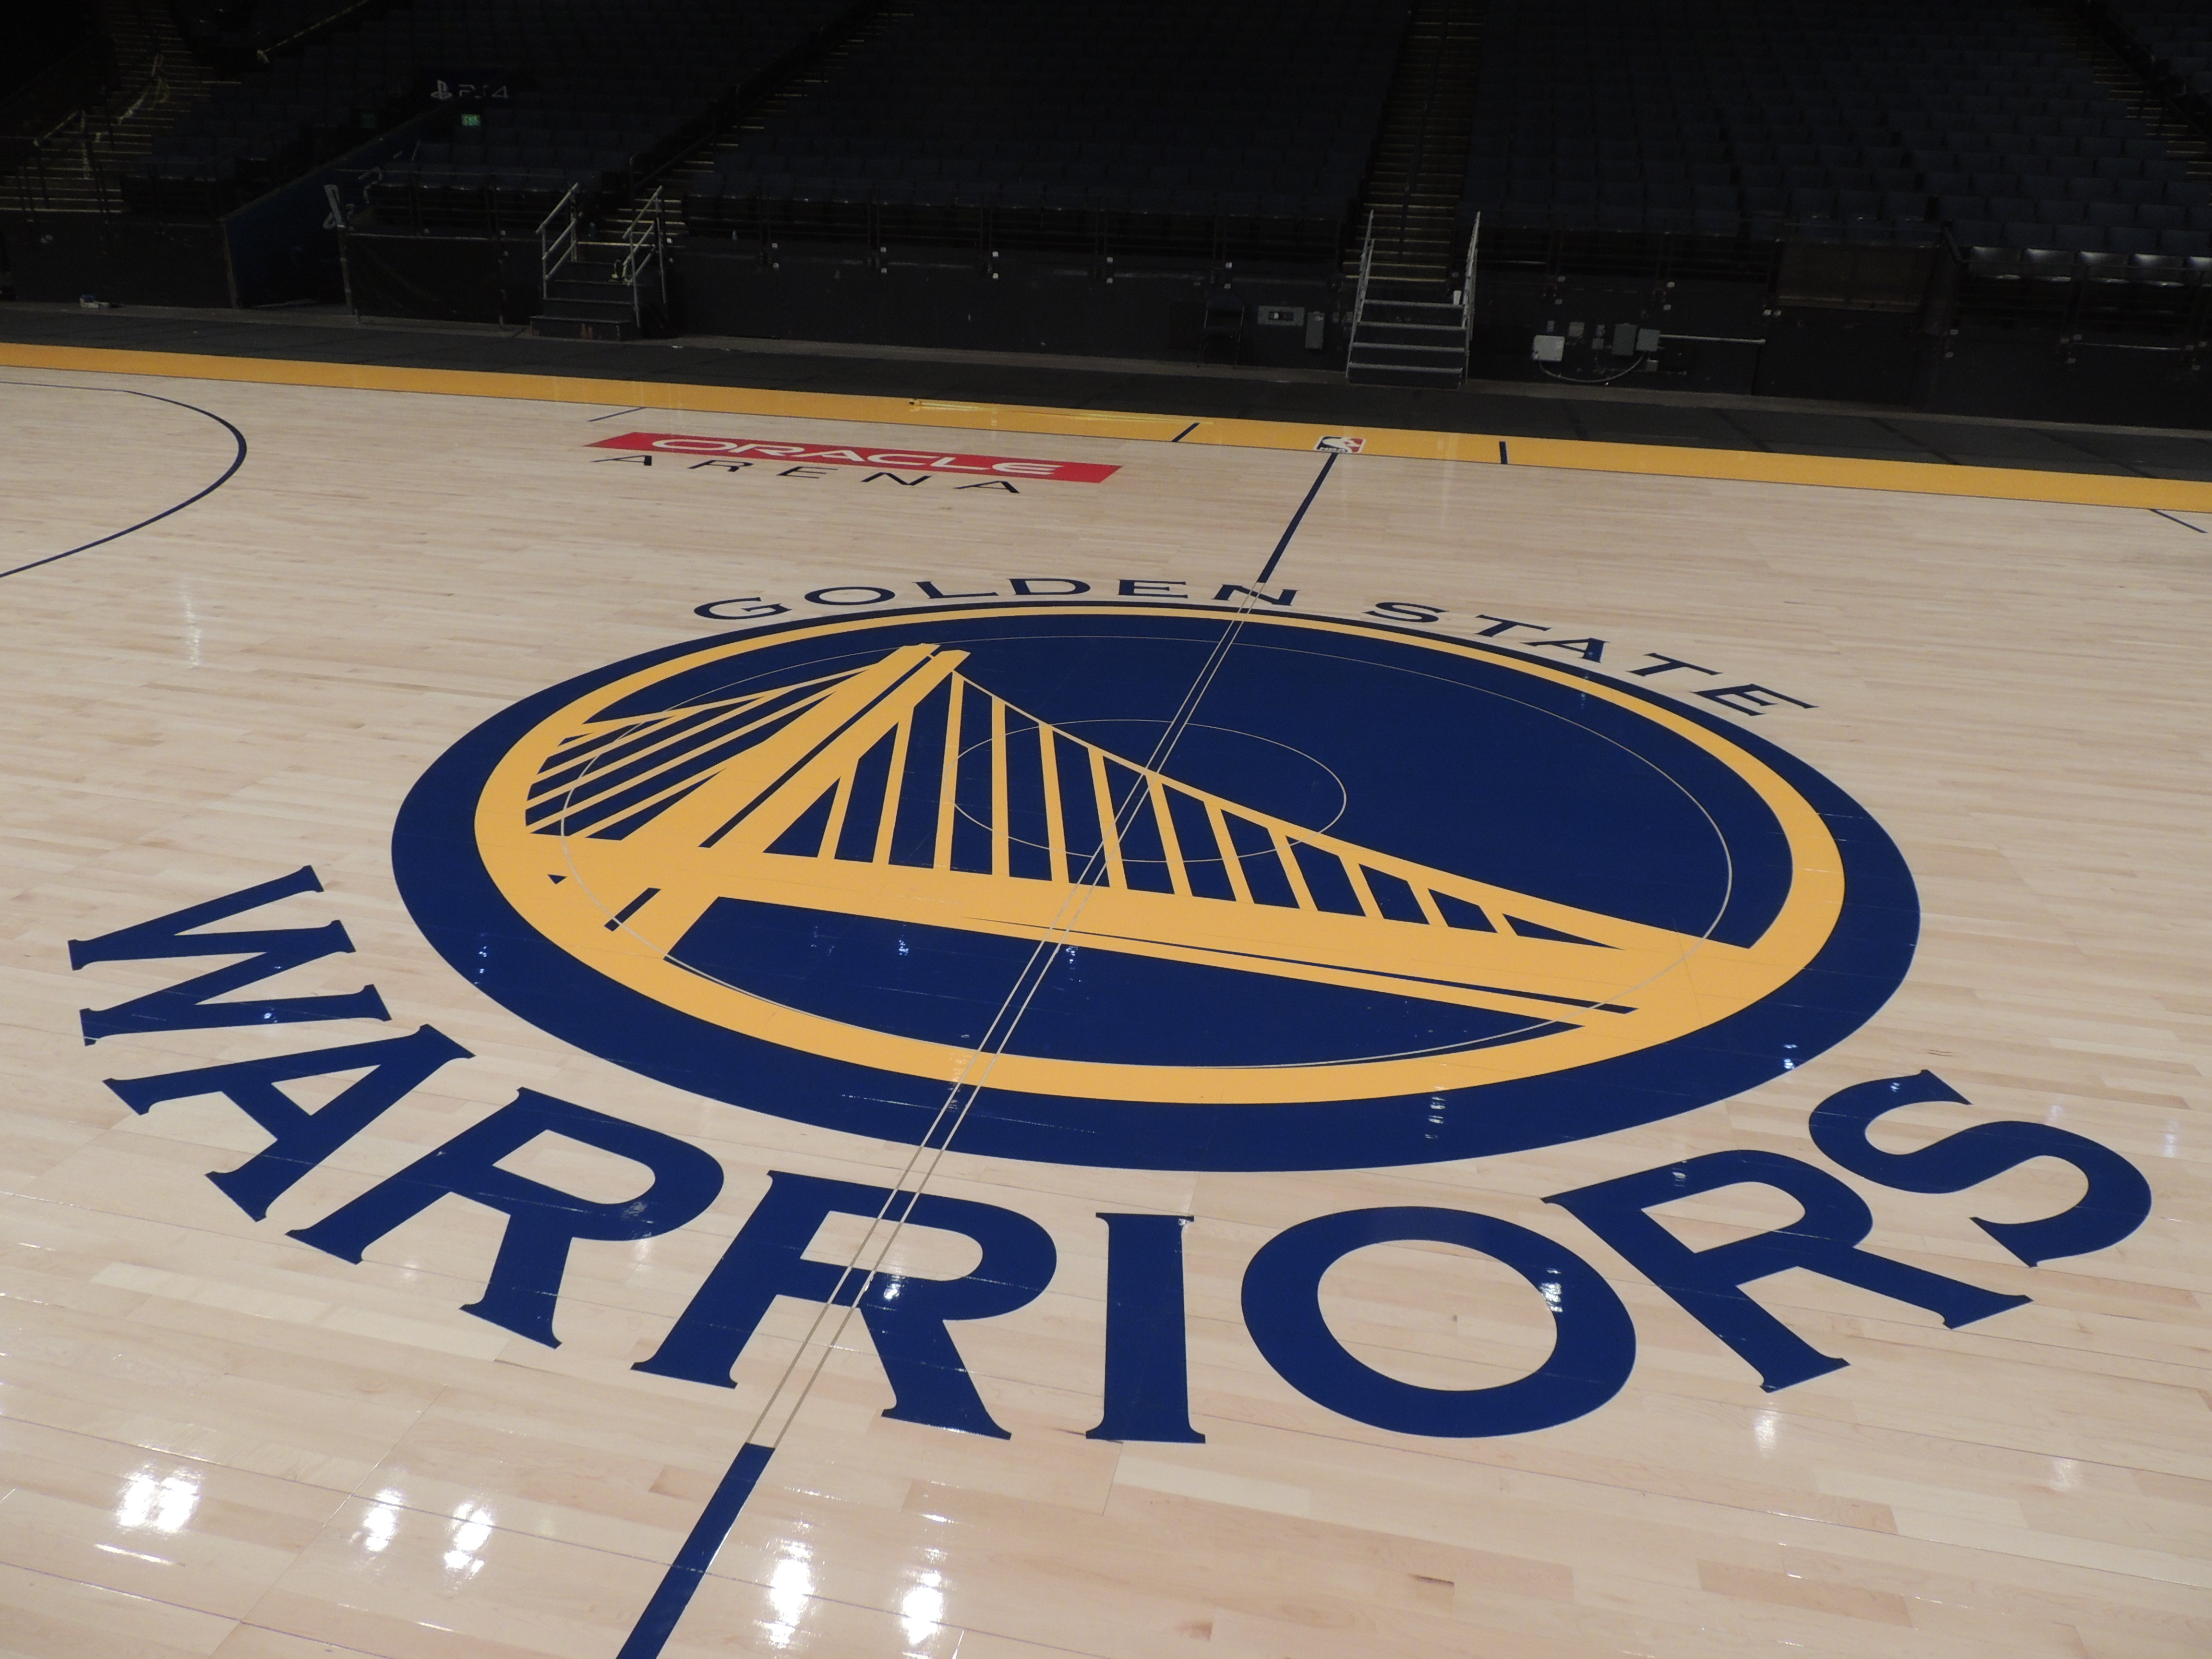 Oracle Arenau0027s New Connor Sports Court For The Golden State Warriors